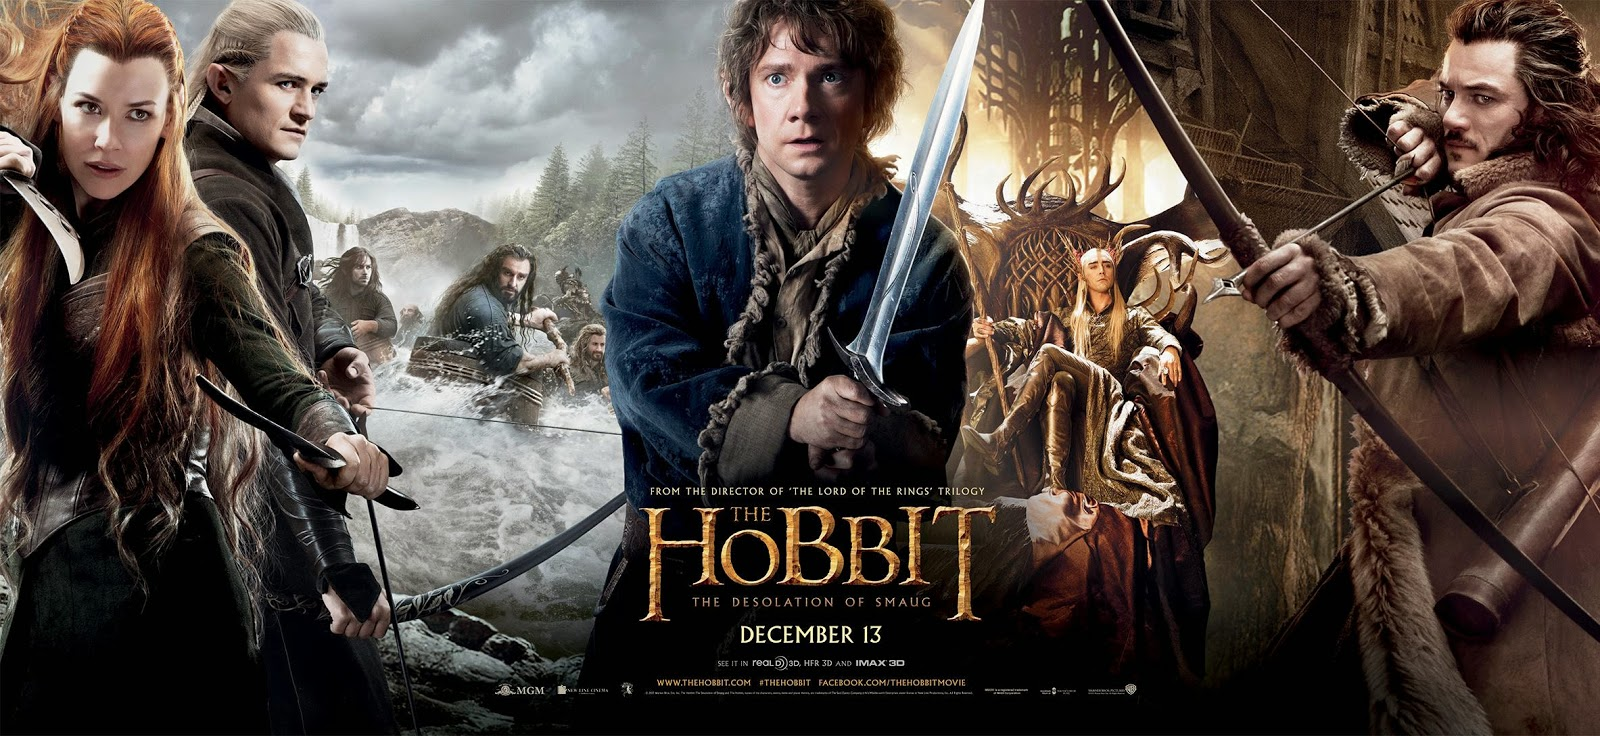 The elves, dwarfs, humans, and Bilbo that are introduced in this movie.